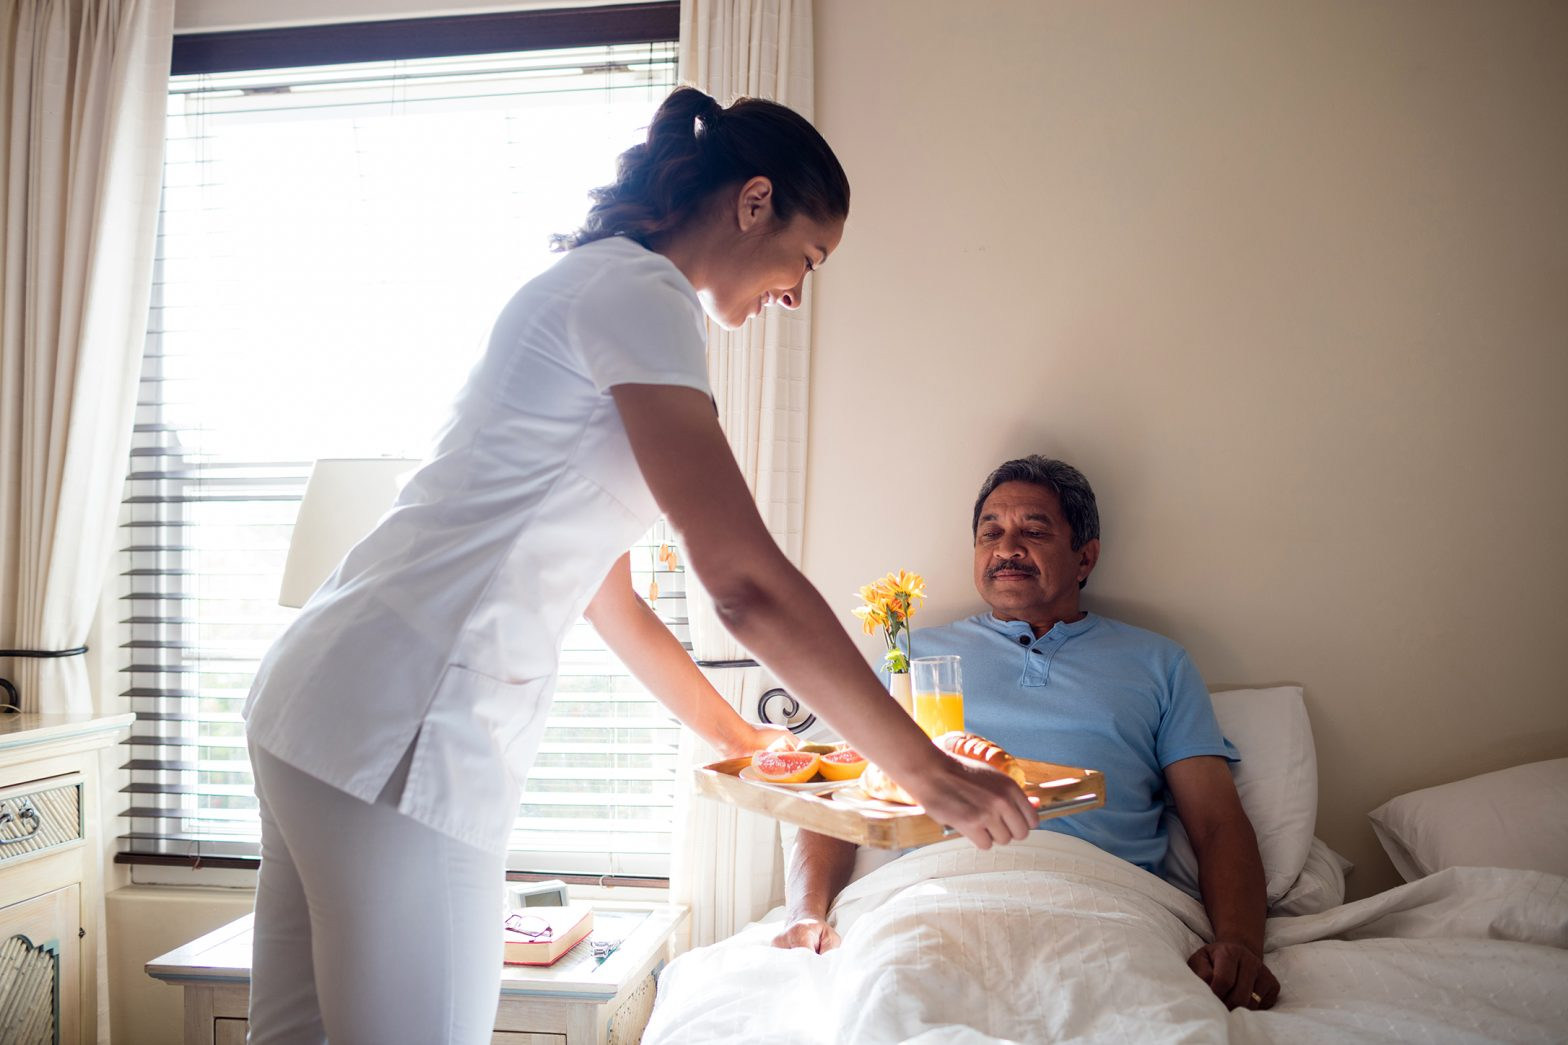 Doctor serving breakfast to senior patient in bedroom